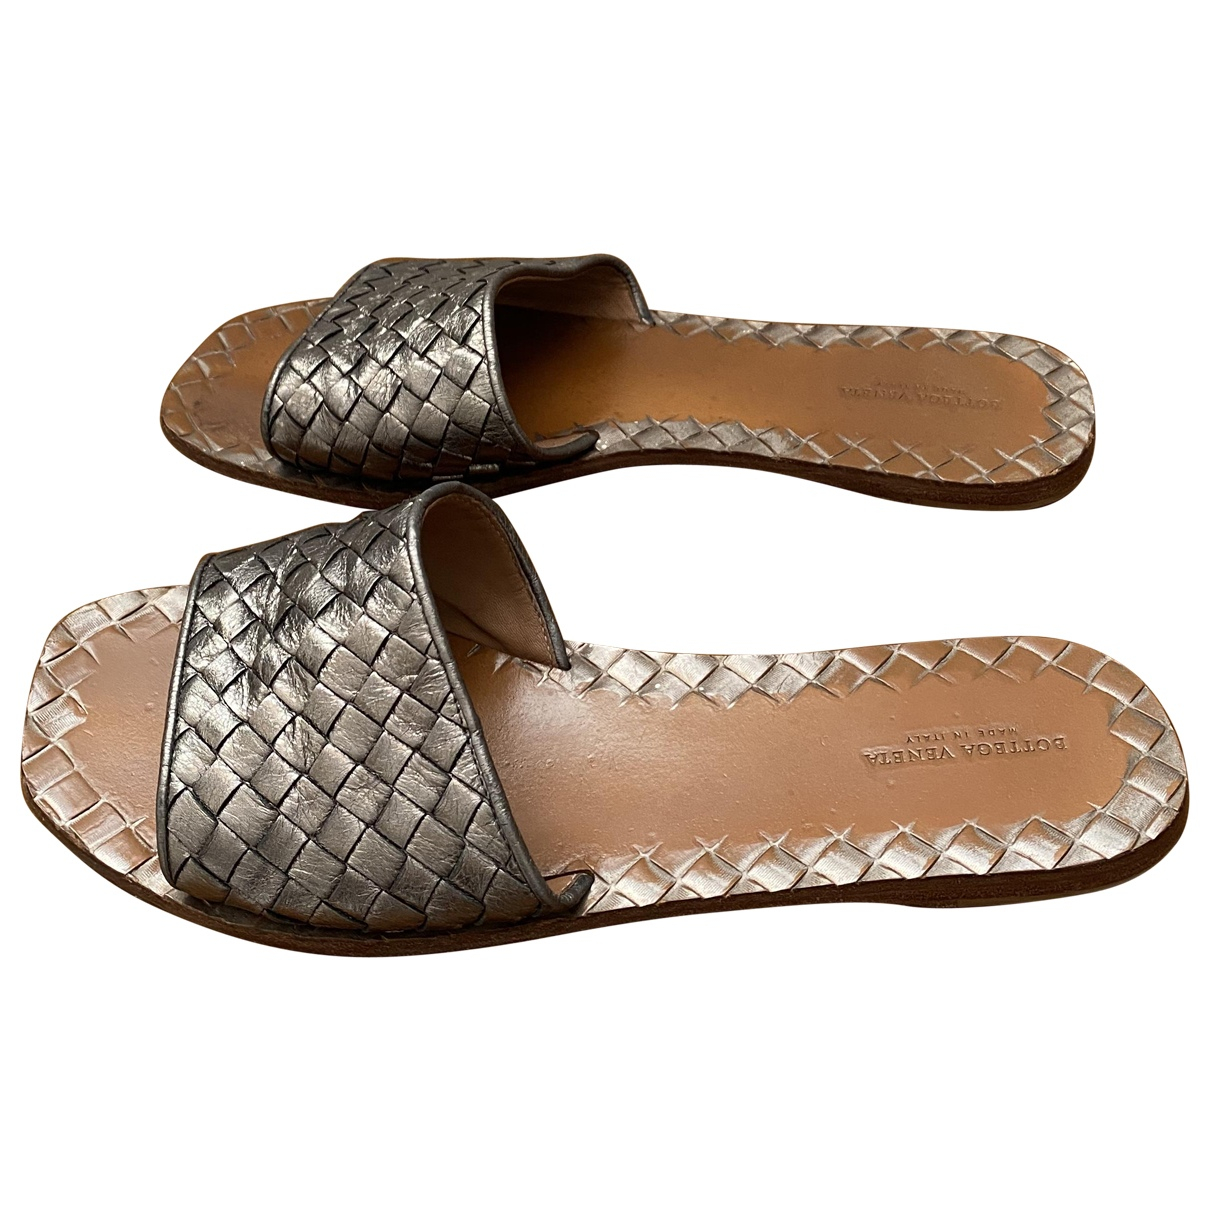 Bottega Veneta \N Metallic Leather Sandals for Women 40 EU